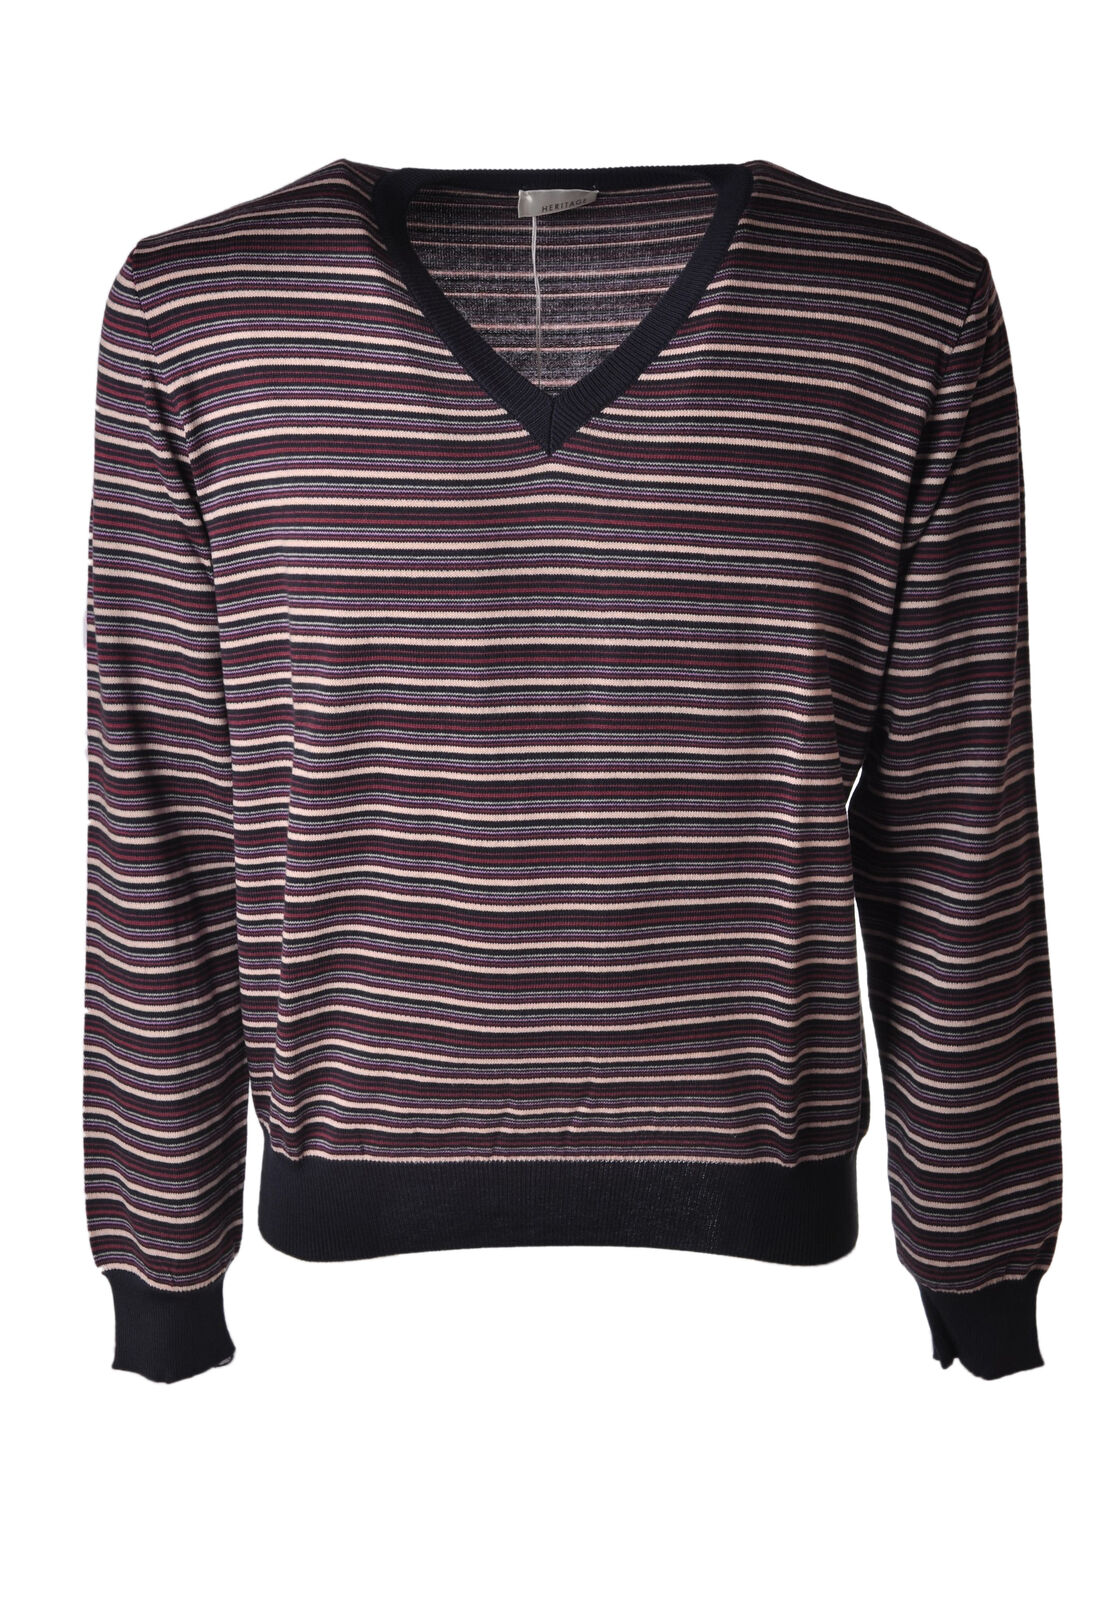 Heritage  -  Sweaters - Male - Fantasy - 4649921A180738